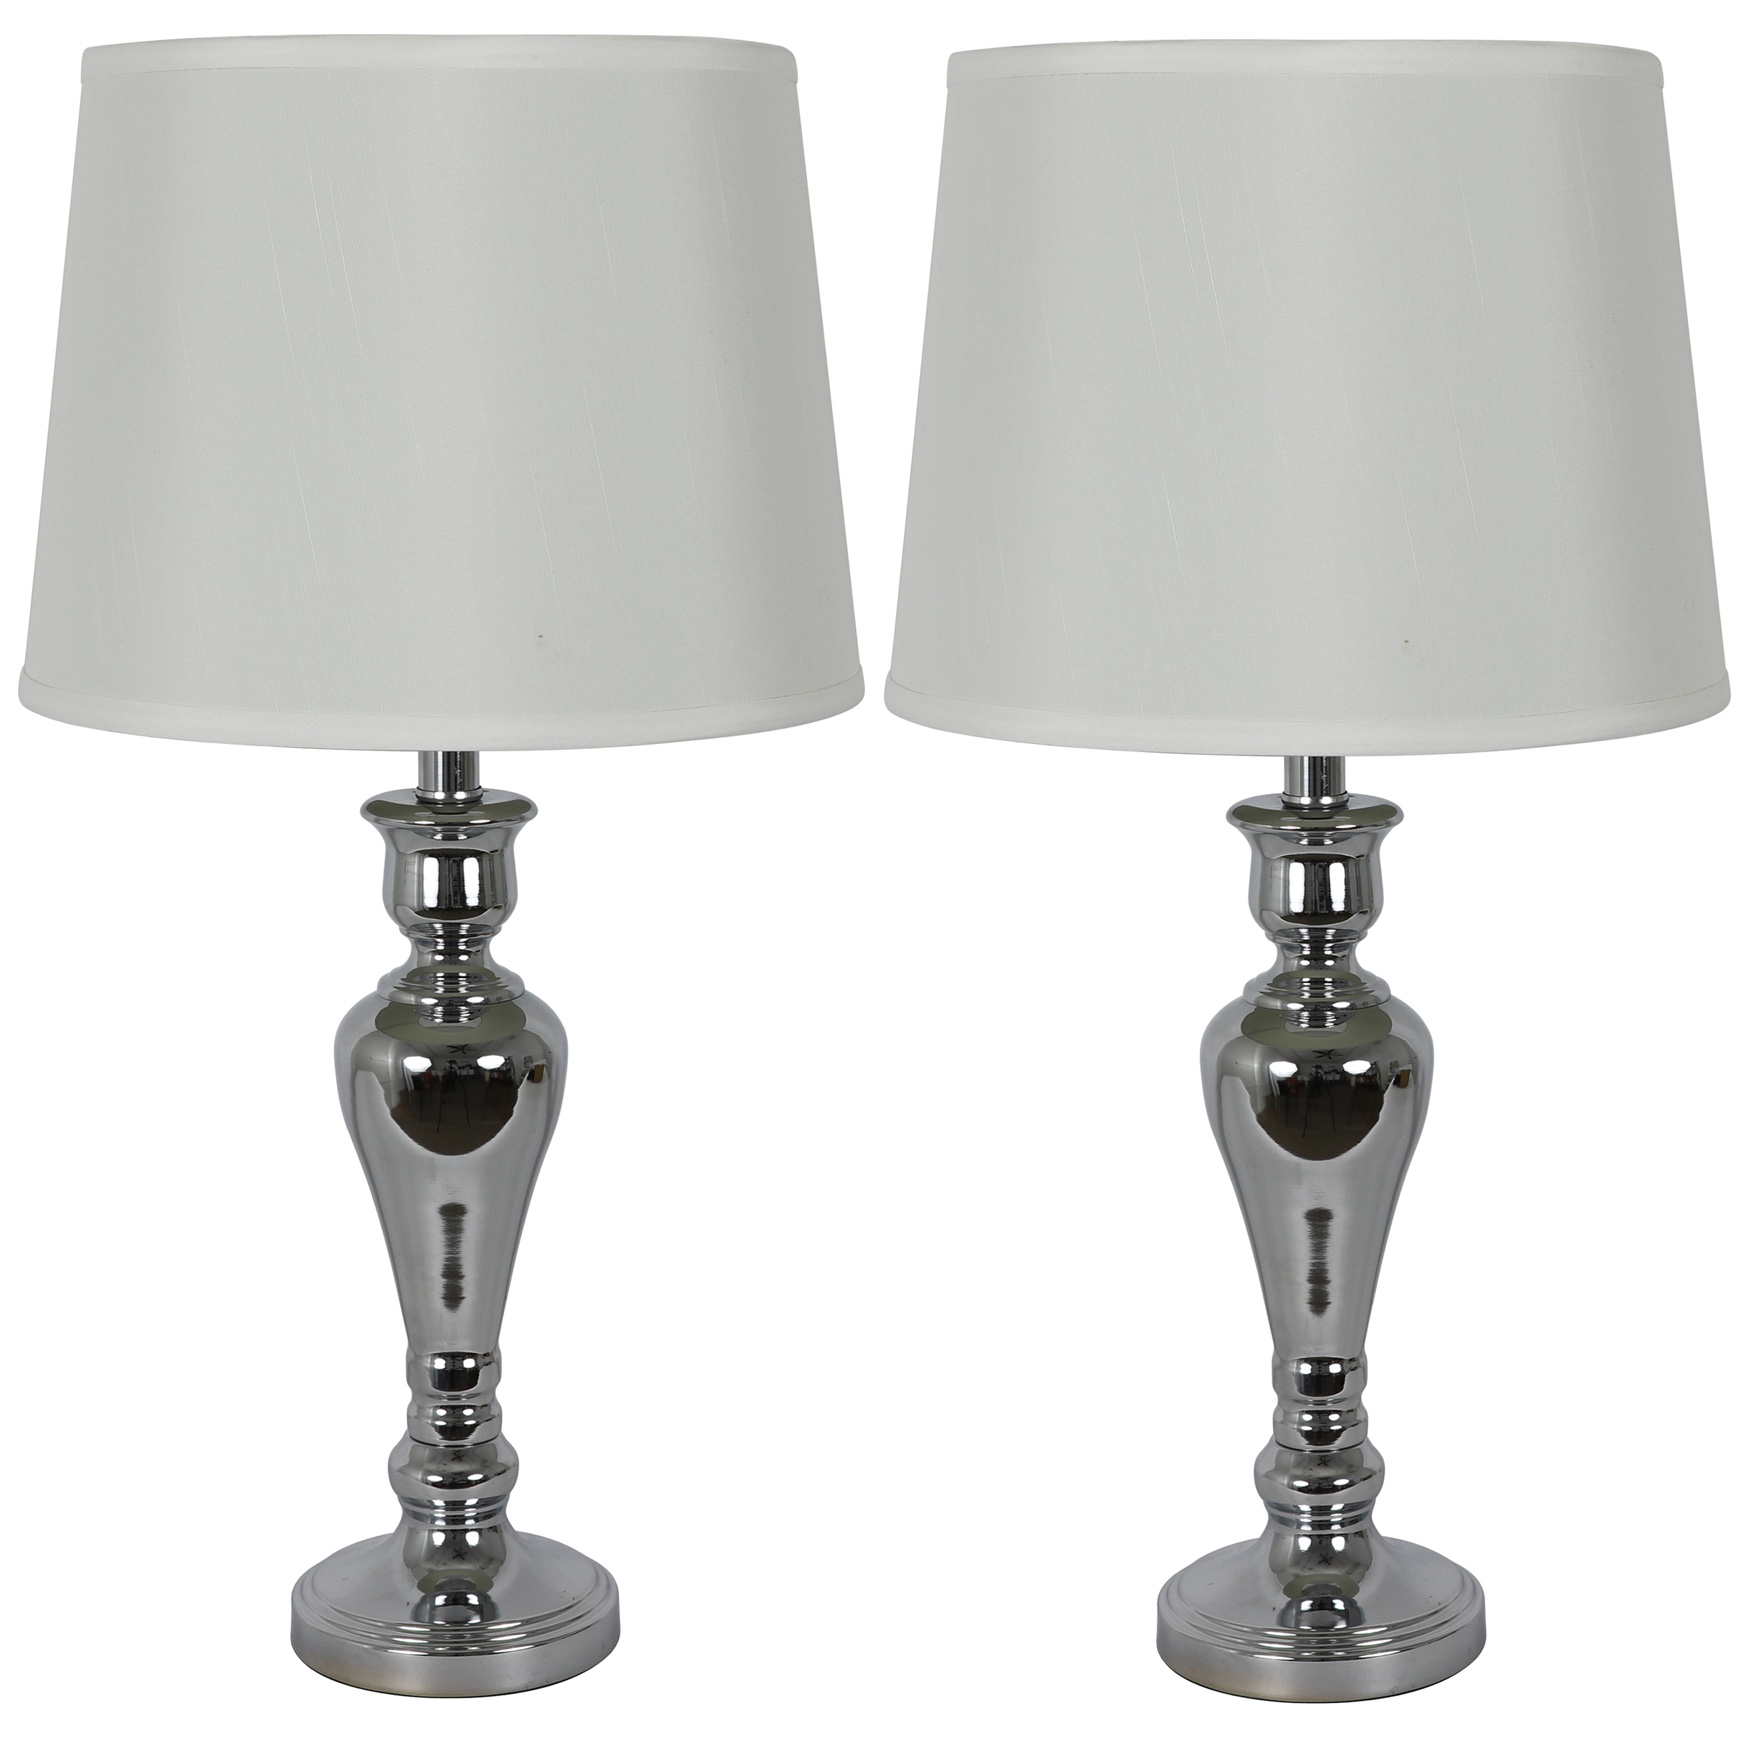 Chrome Touch Control 2-Pack Lamp by J. Hunt, CHROME